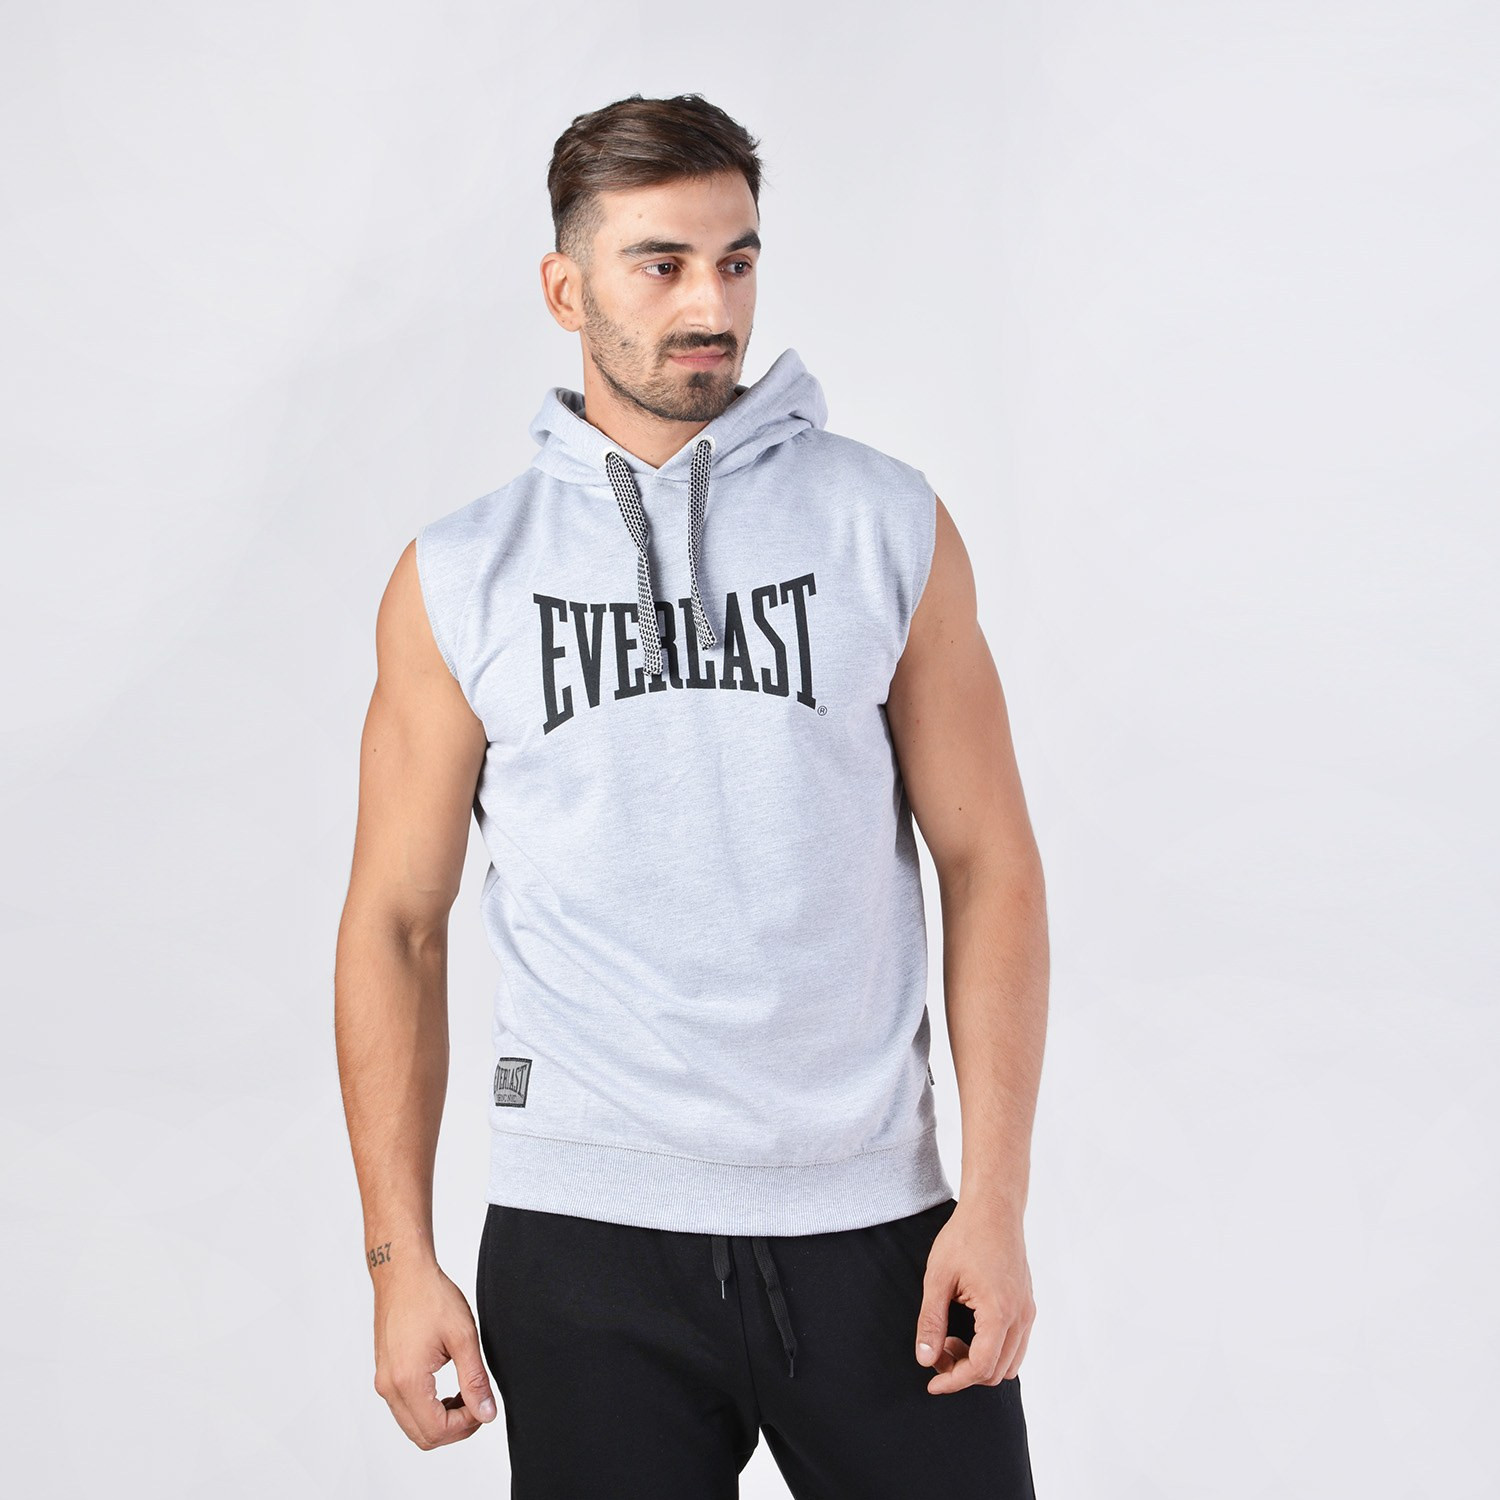 Everlast MENS SLEEVELESS HOODED TOP (9000040733_6216)